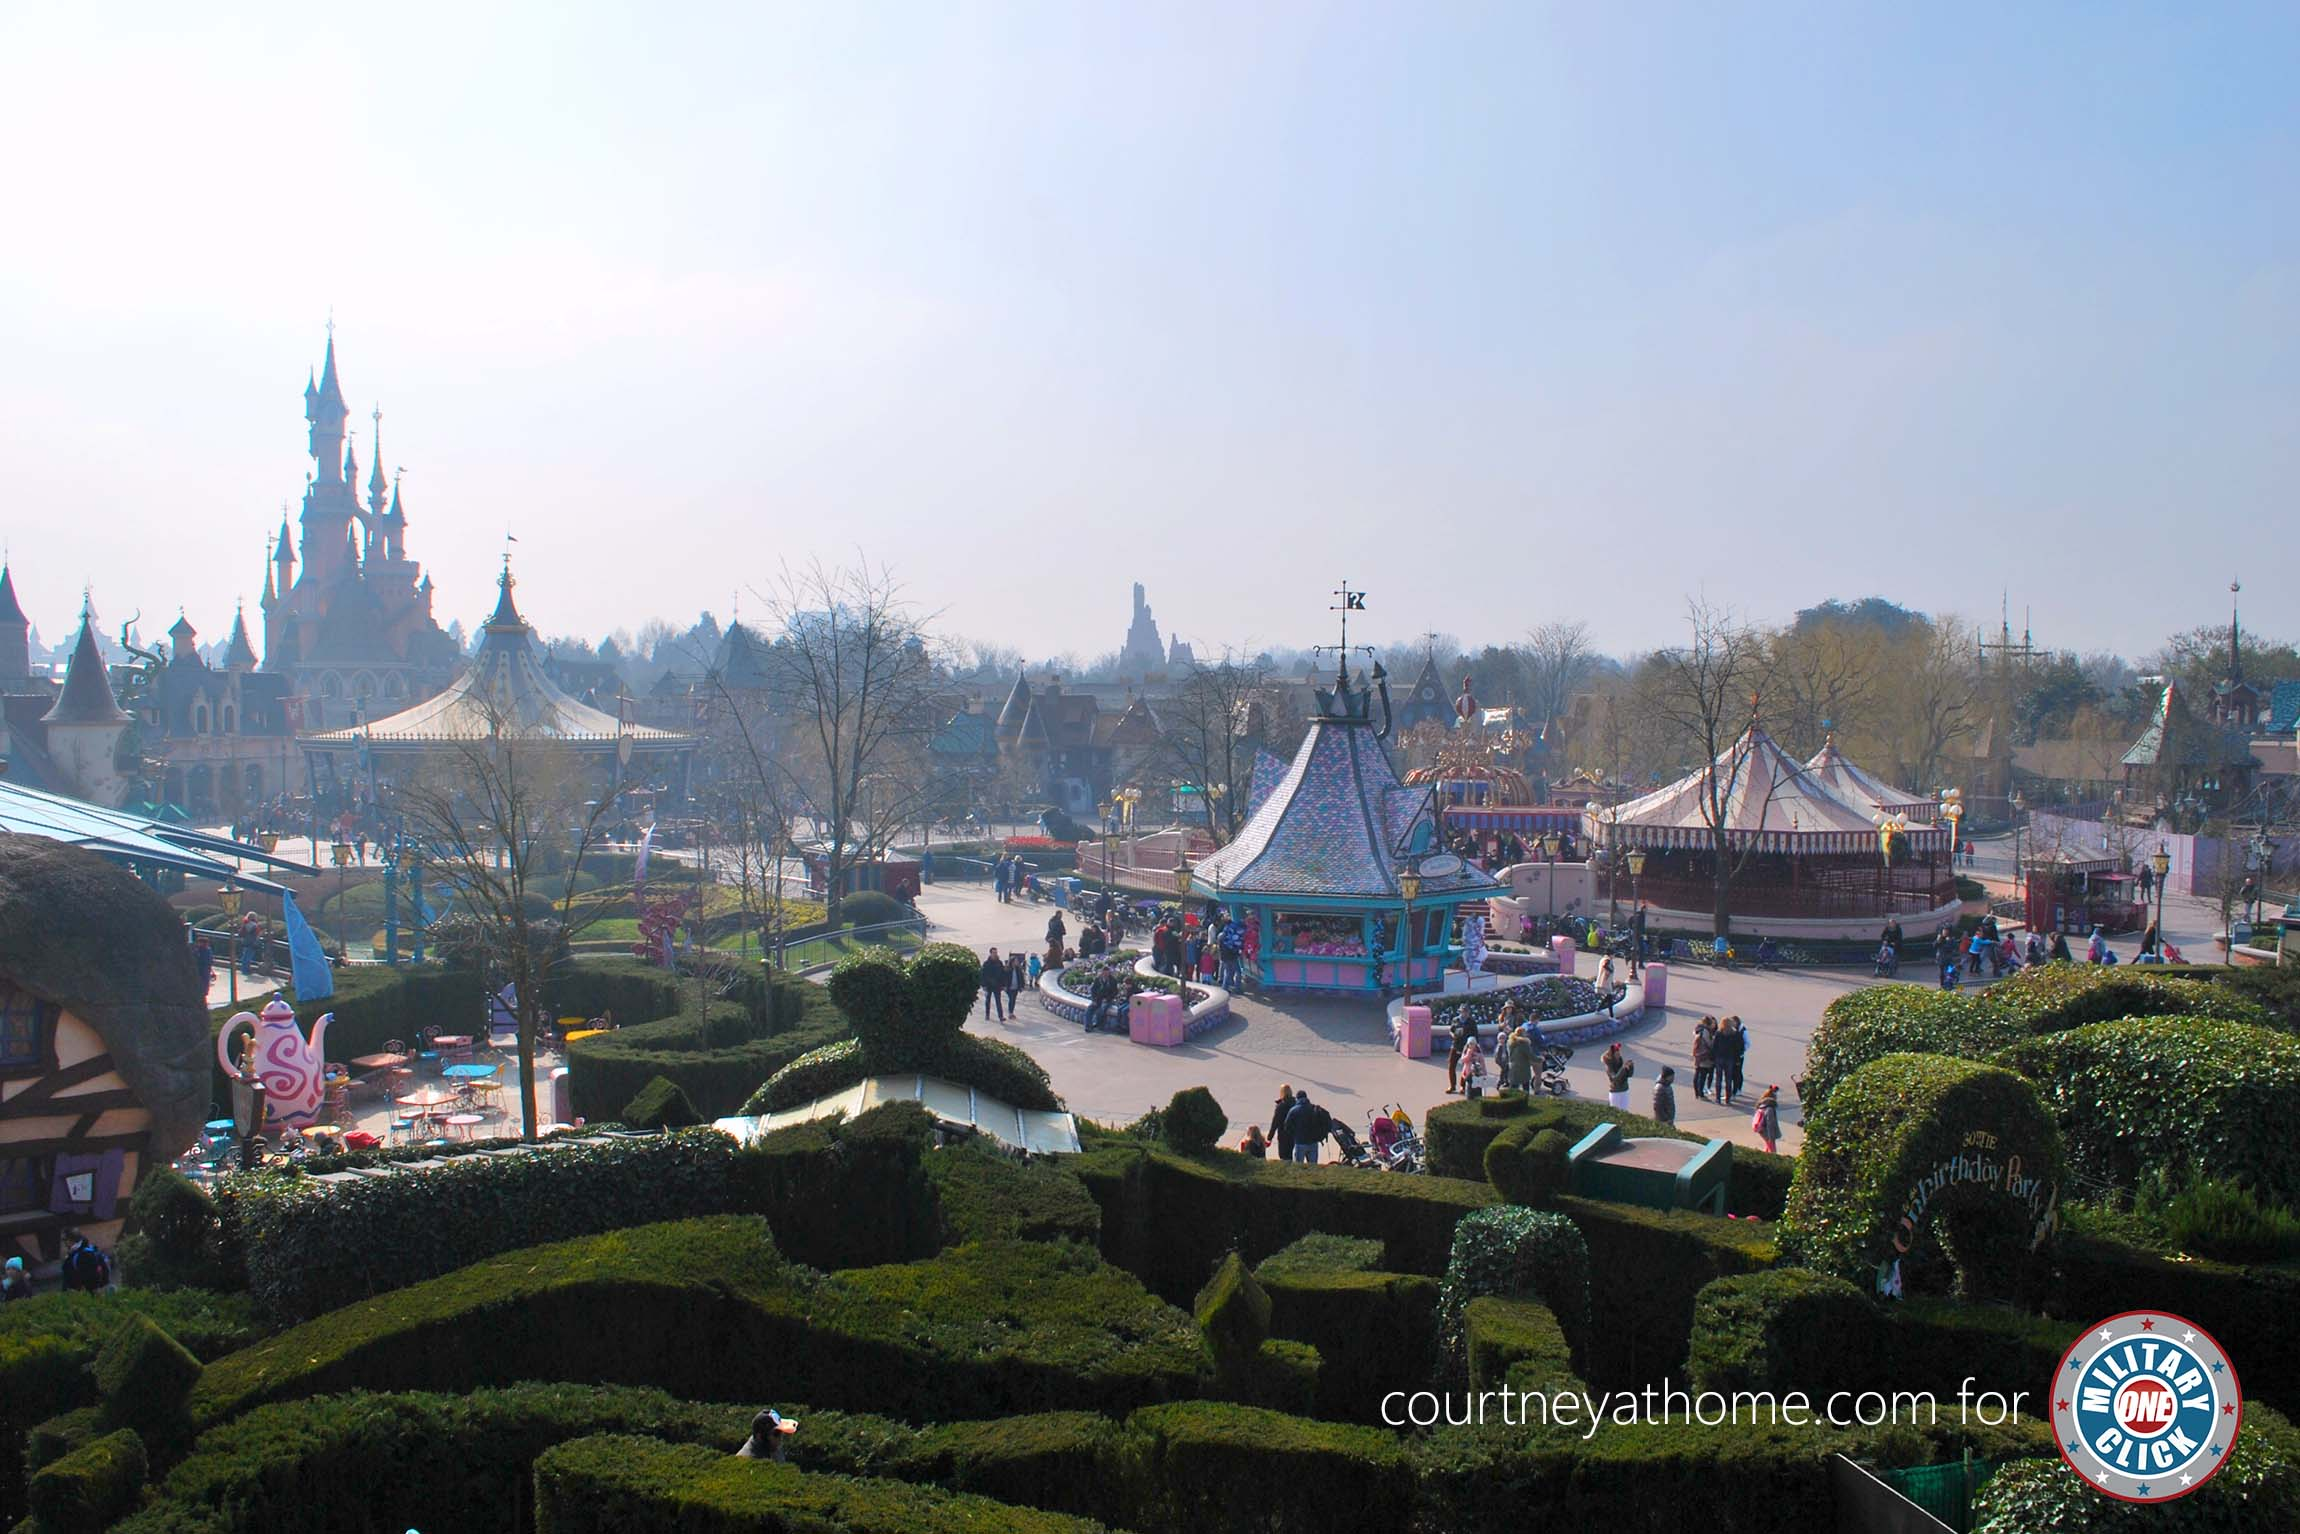 Travel tips for military families heading to Disneyland Paris! Saving this for the future!